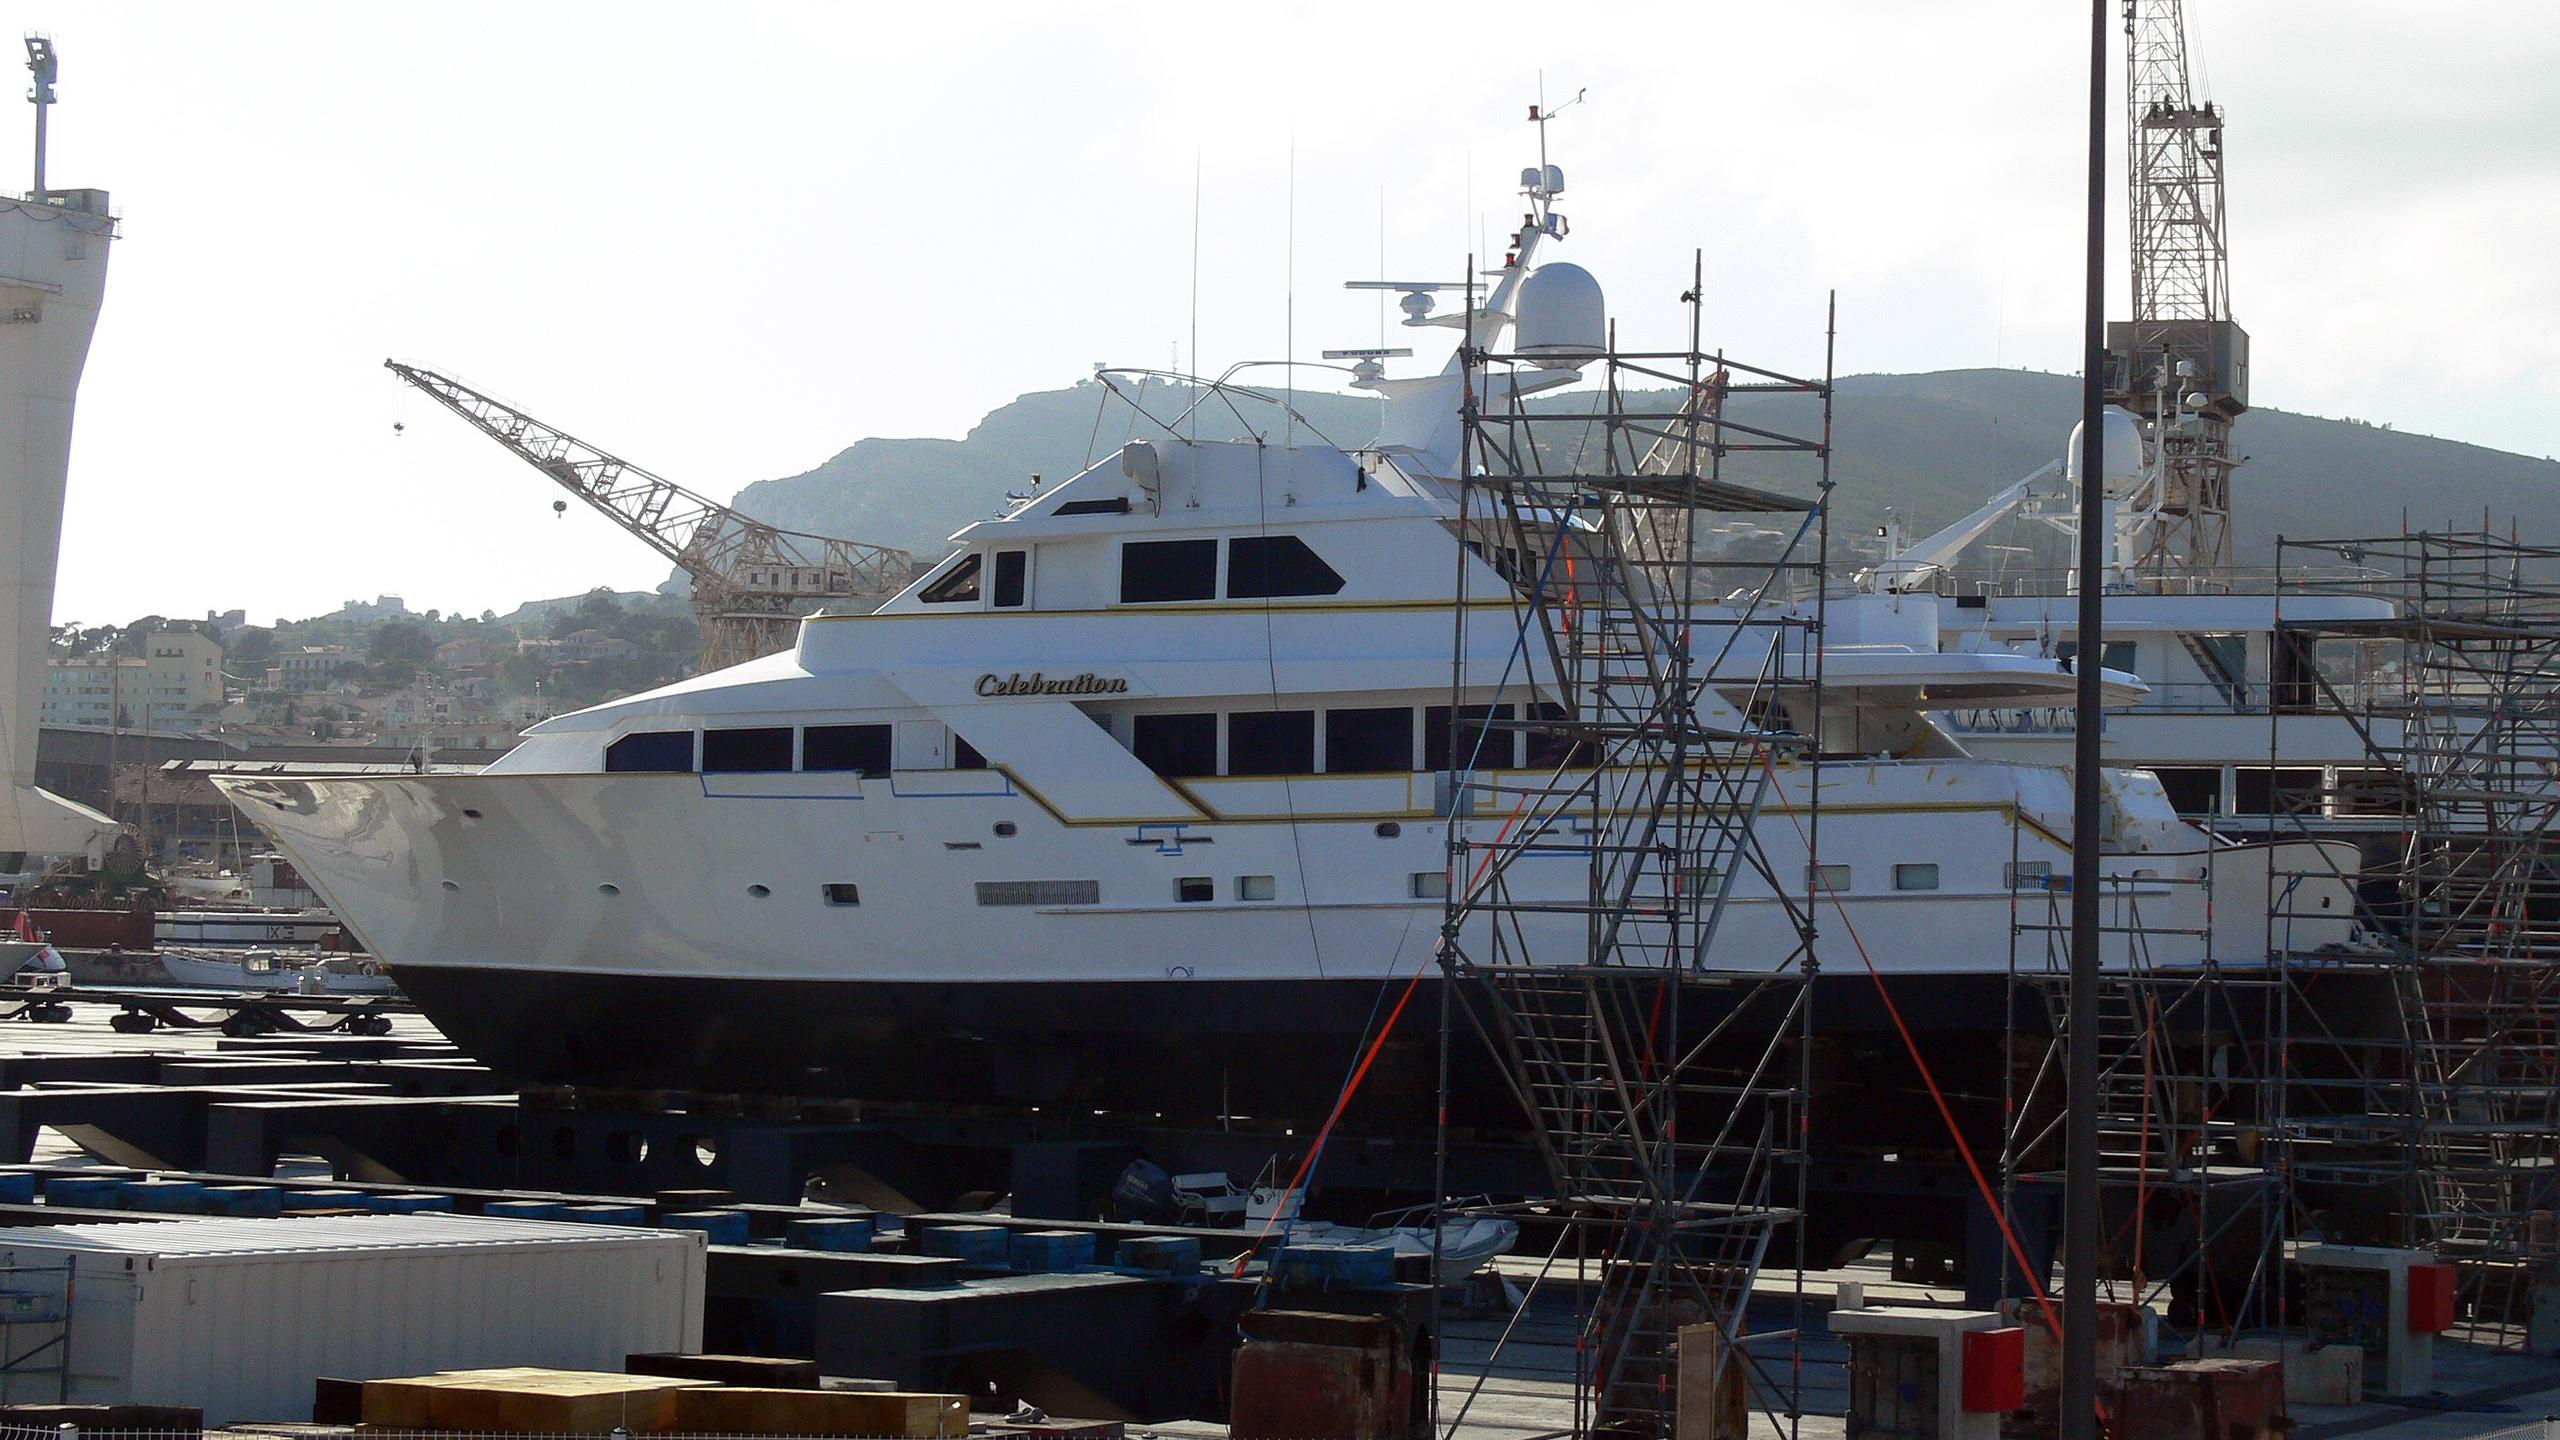 celebration-motor-yacht-denison-1987-34m-profile-shipyard